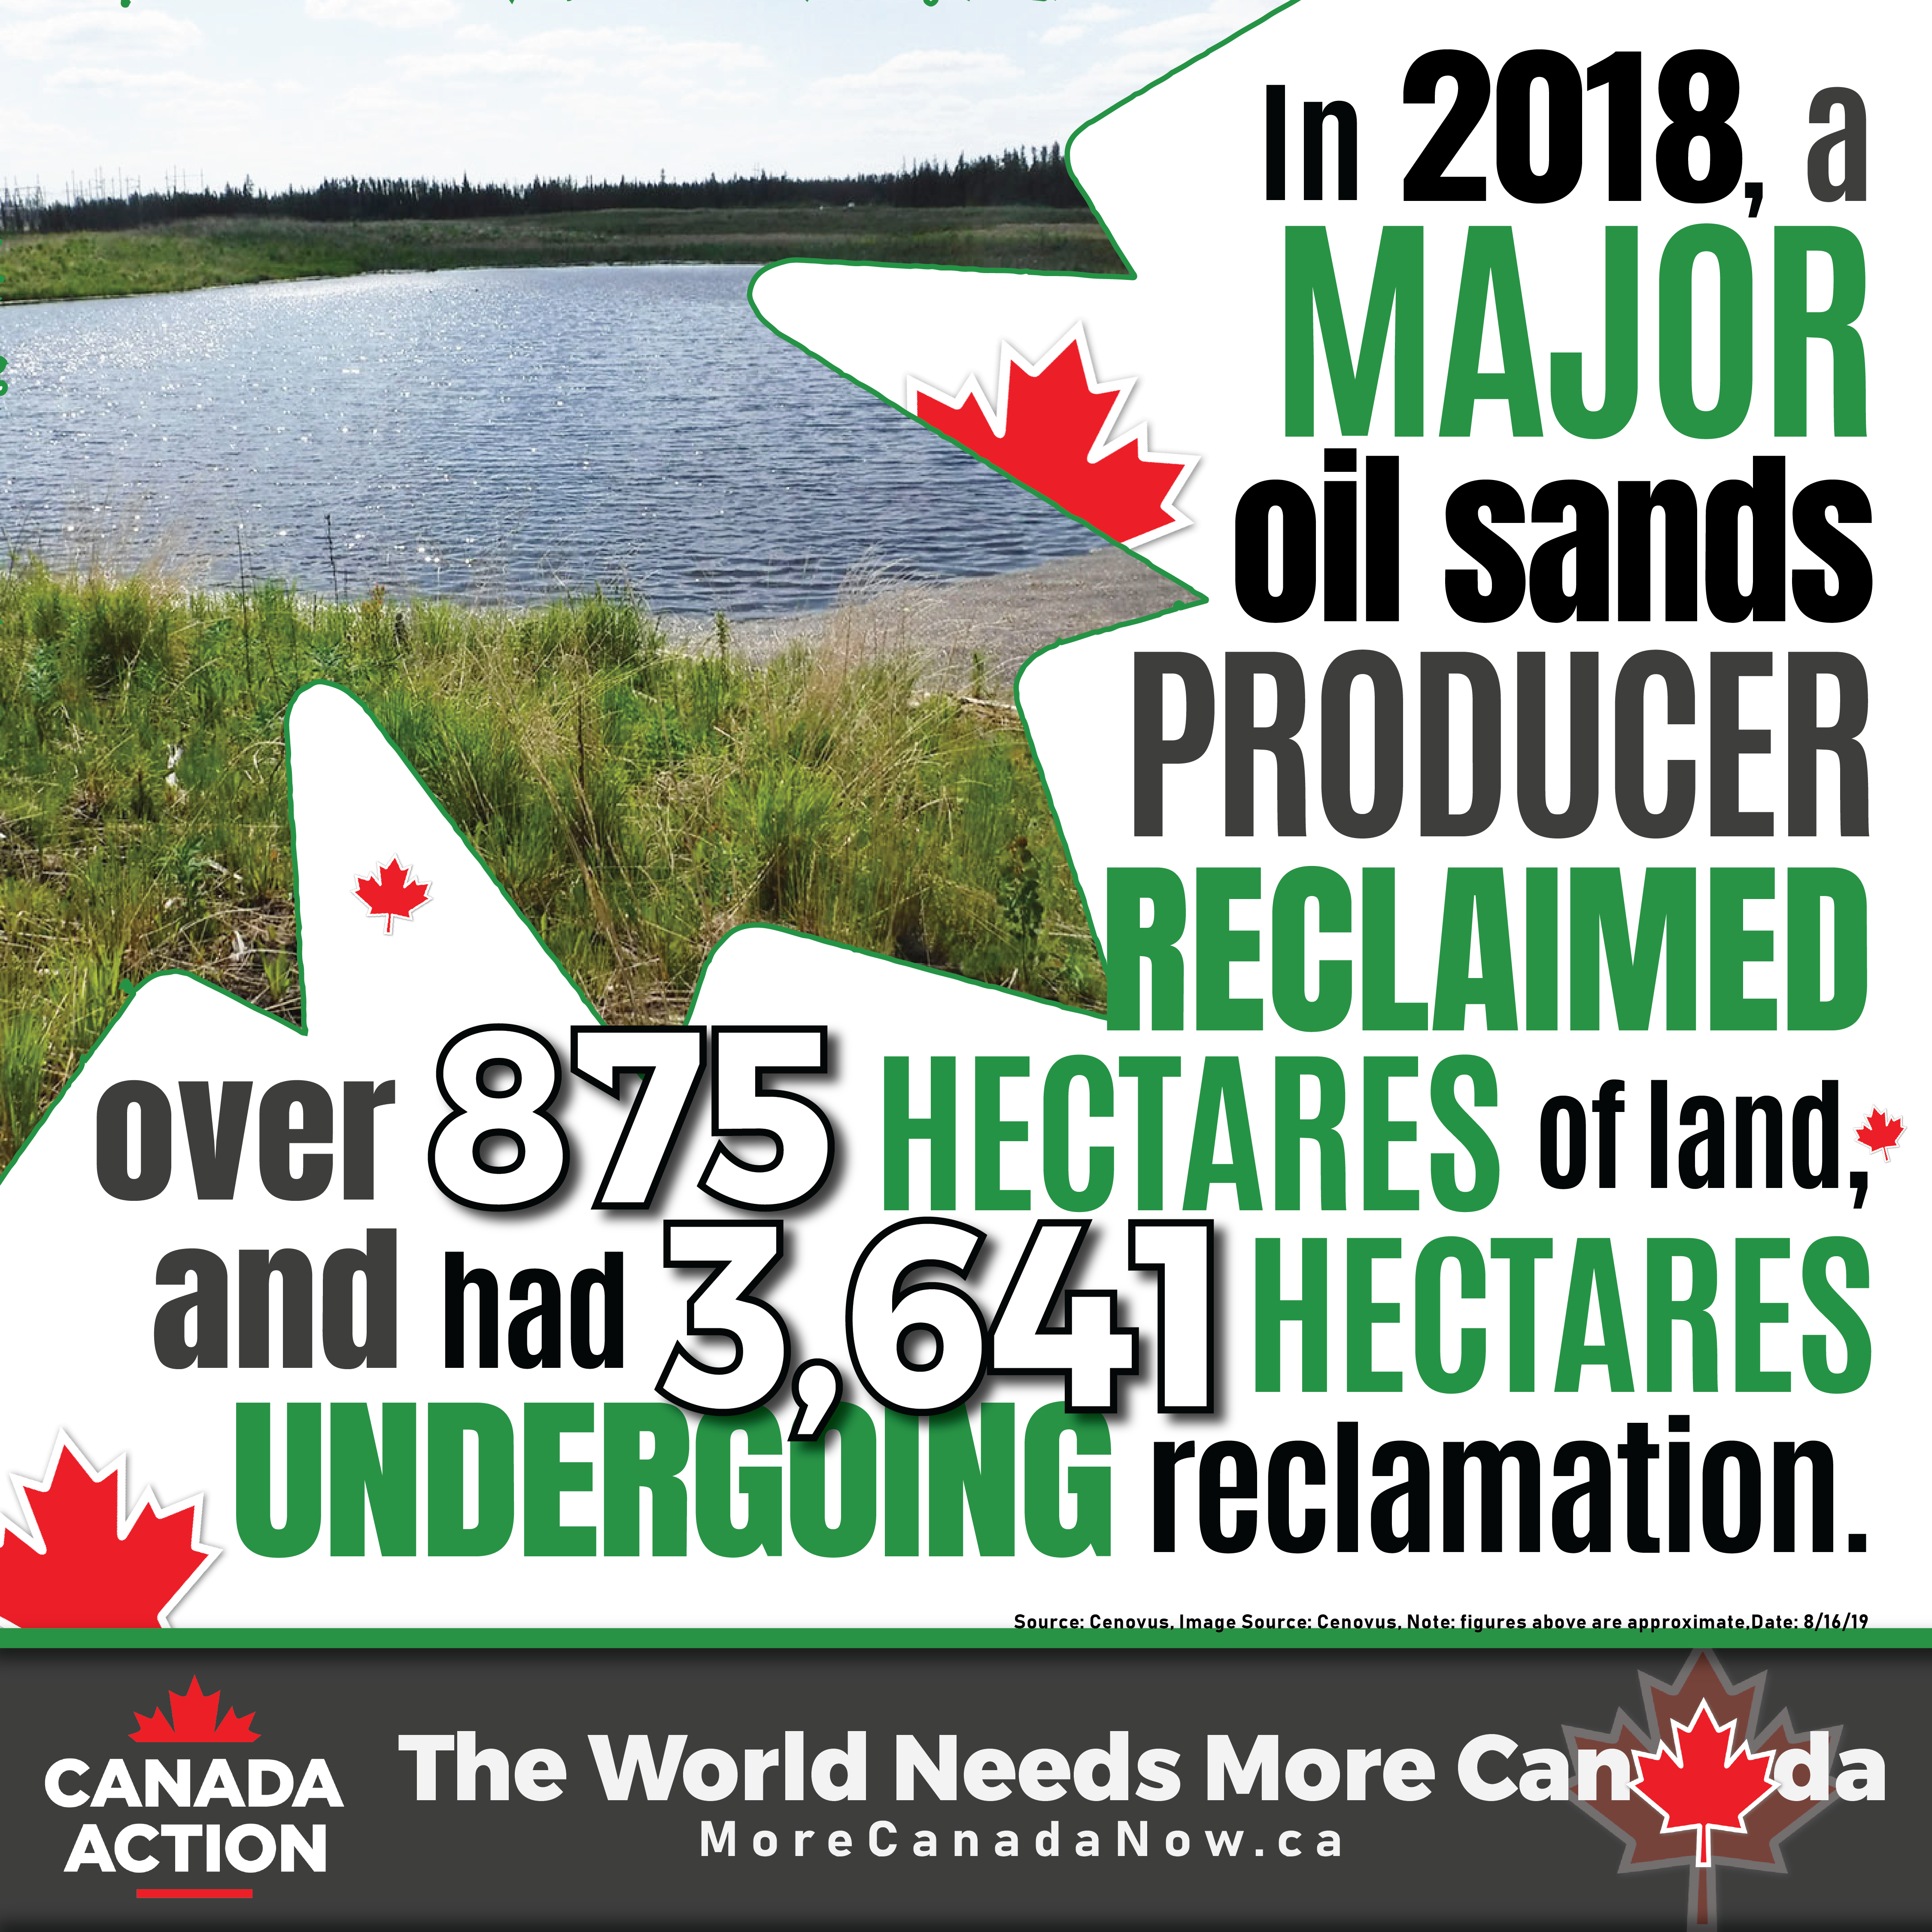 major oil sands producer reclaims over 800 hectares of land in 2018